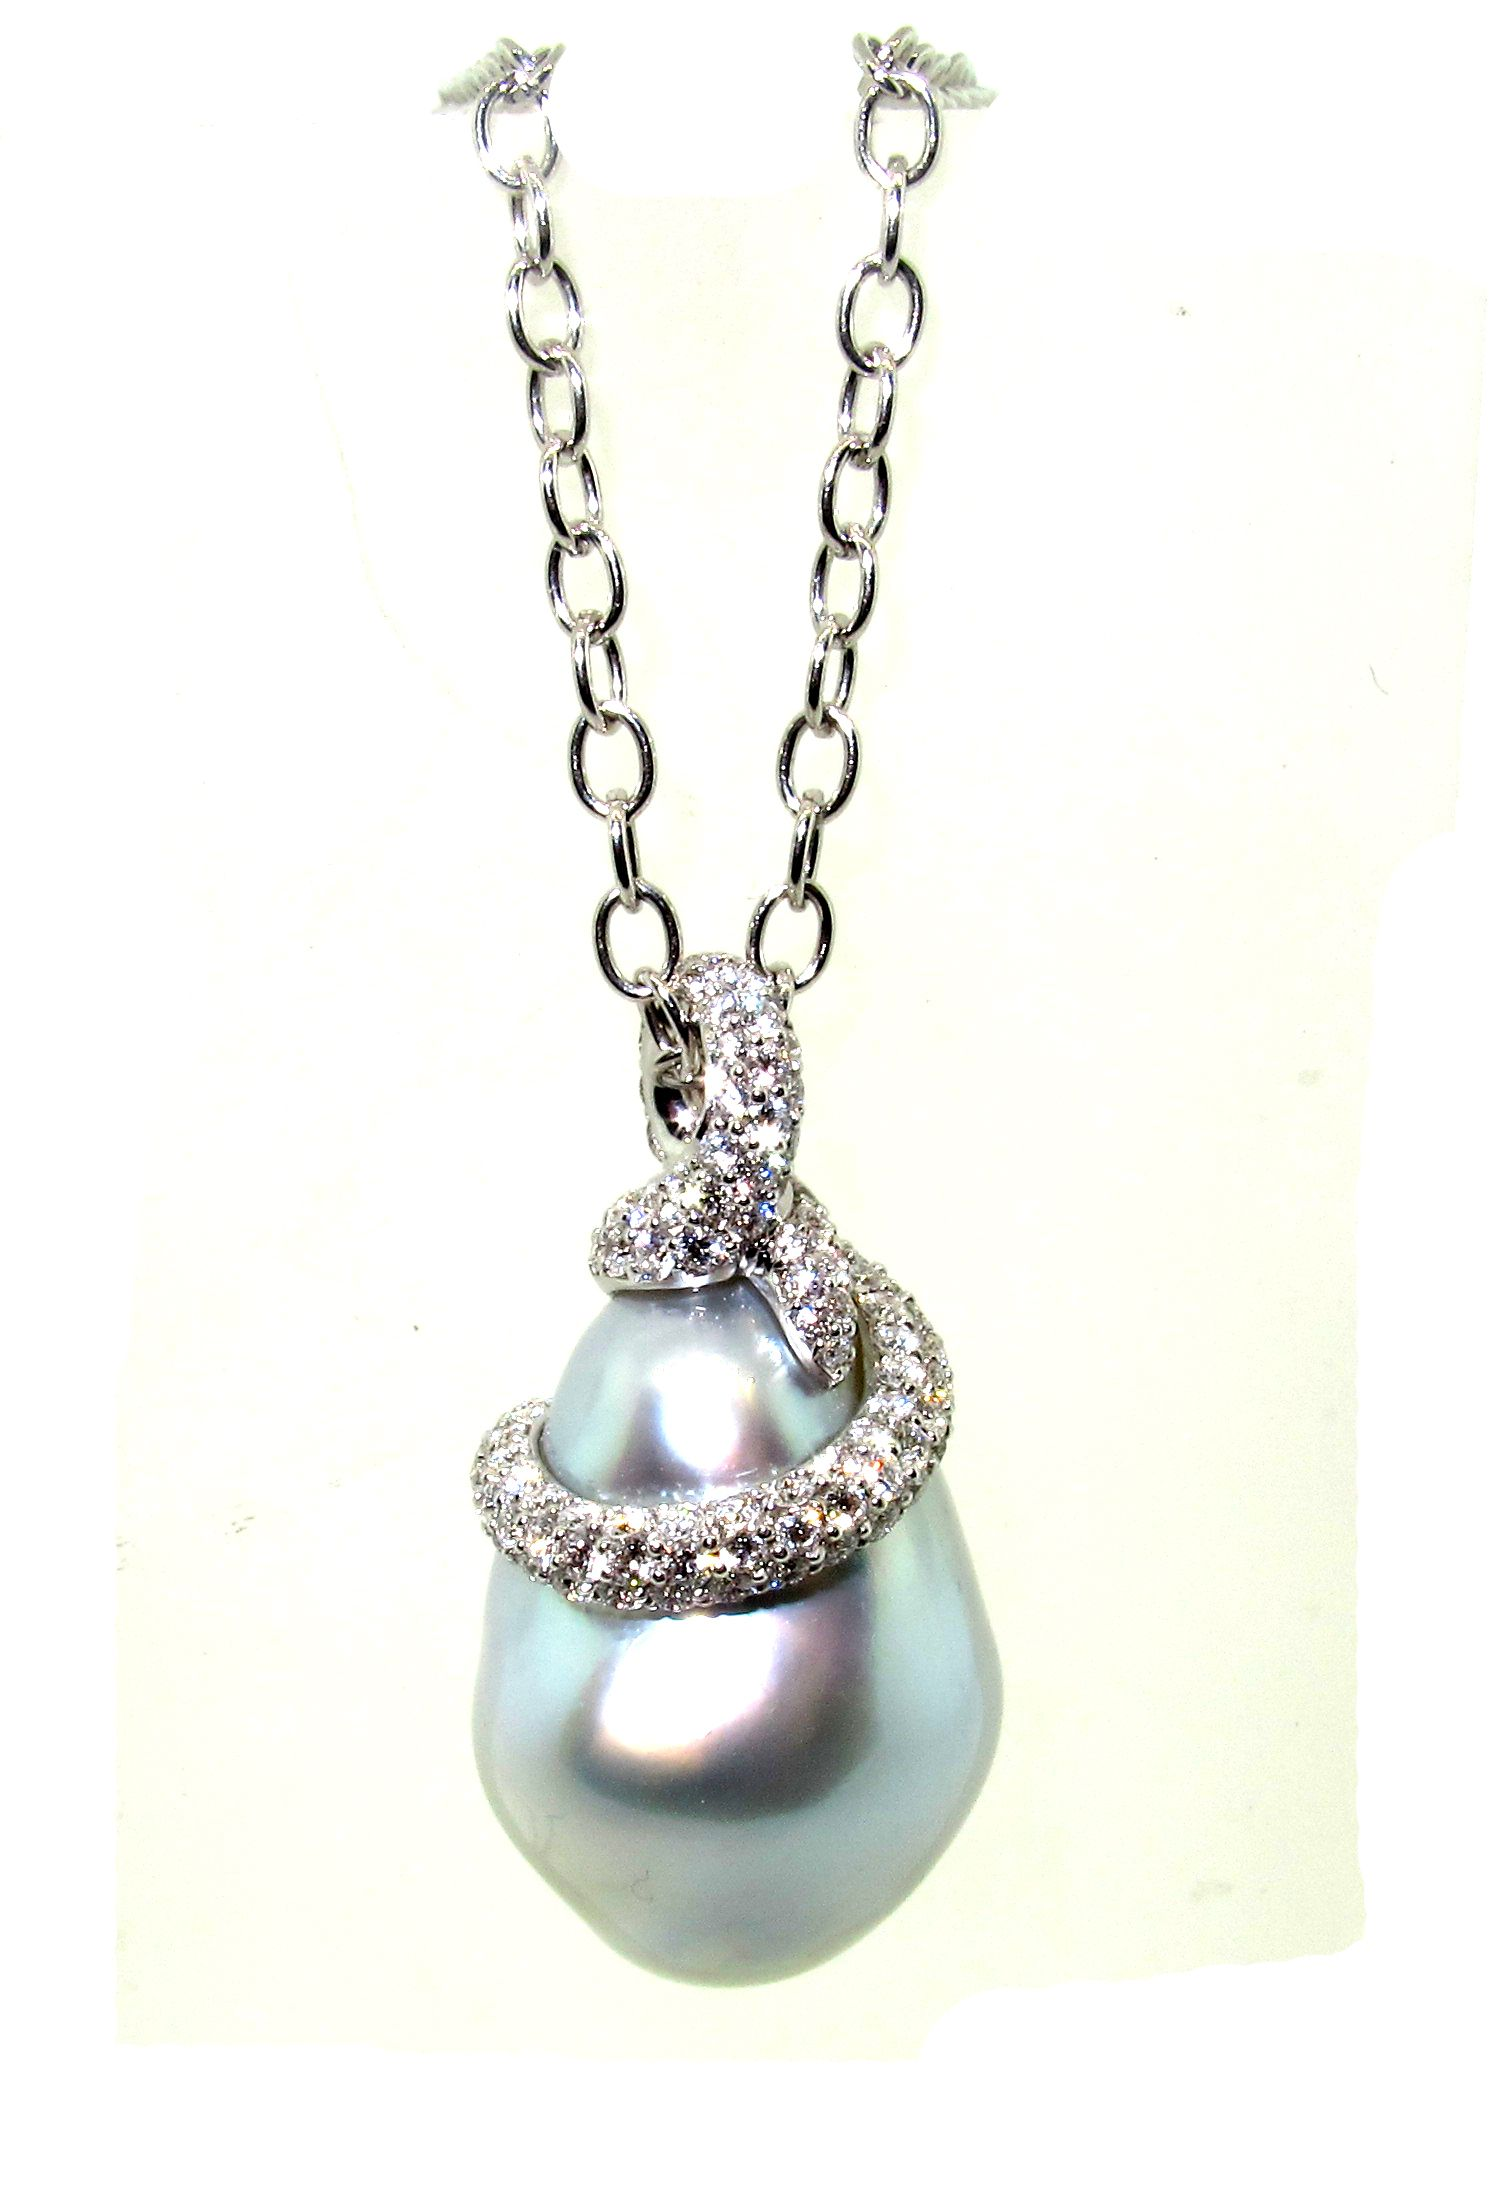 pendant enlarged jewelry necklace grapes the necklaces pearl products mikimoto